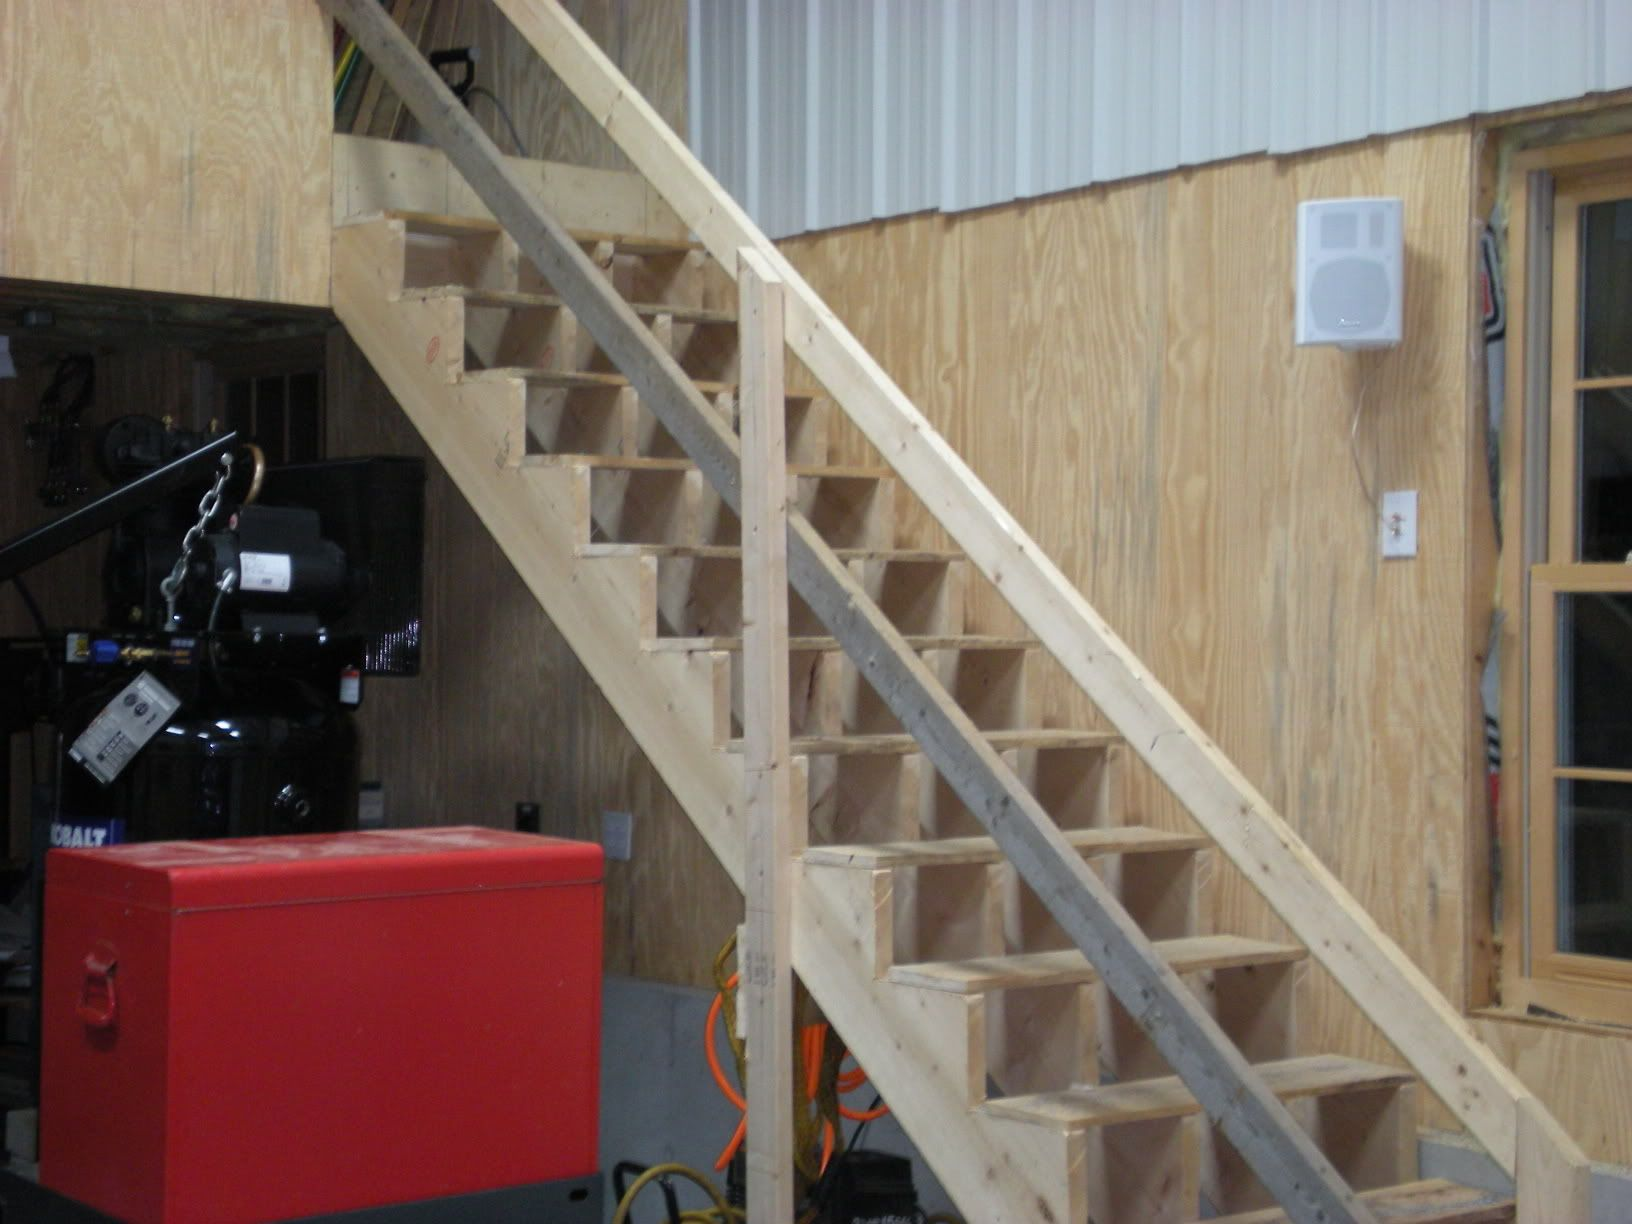 Garage stair railing ideas gargage loft stairs ideas for How to build a garage loft